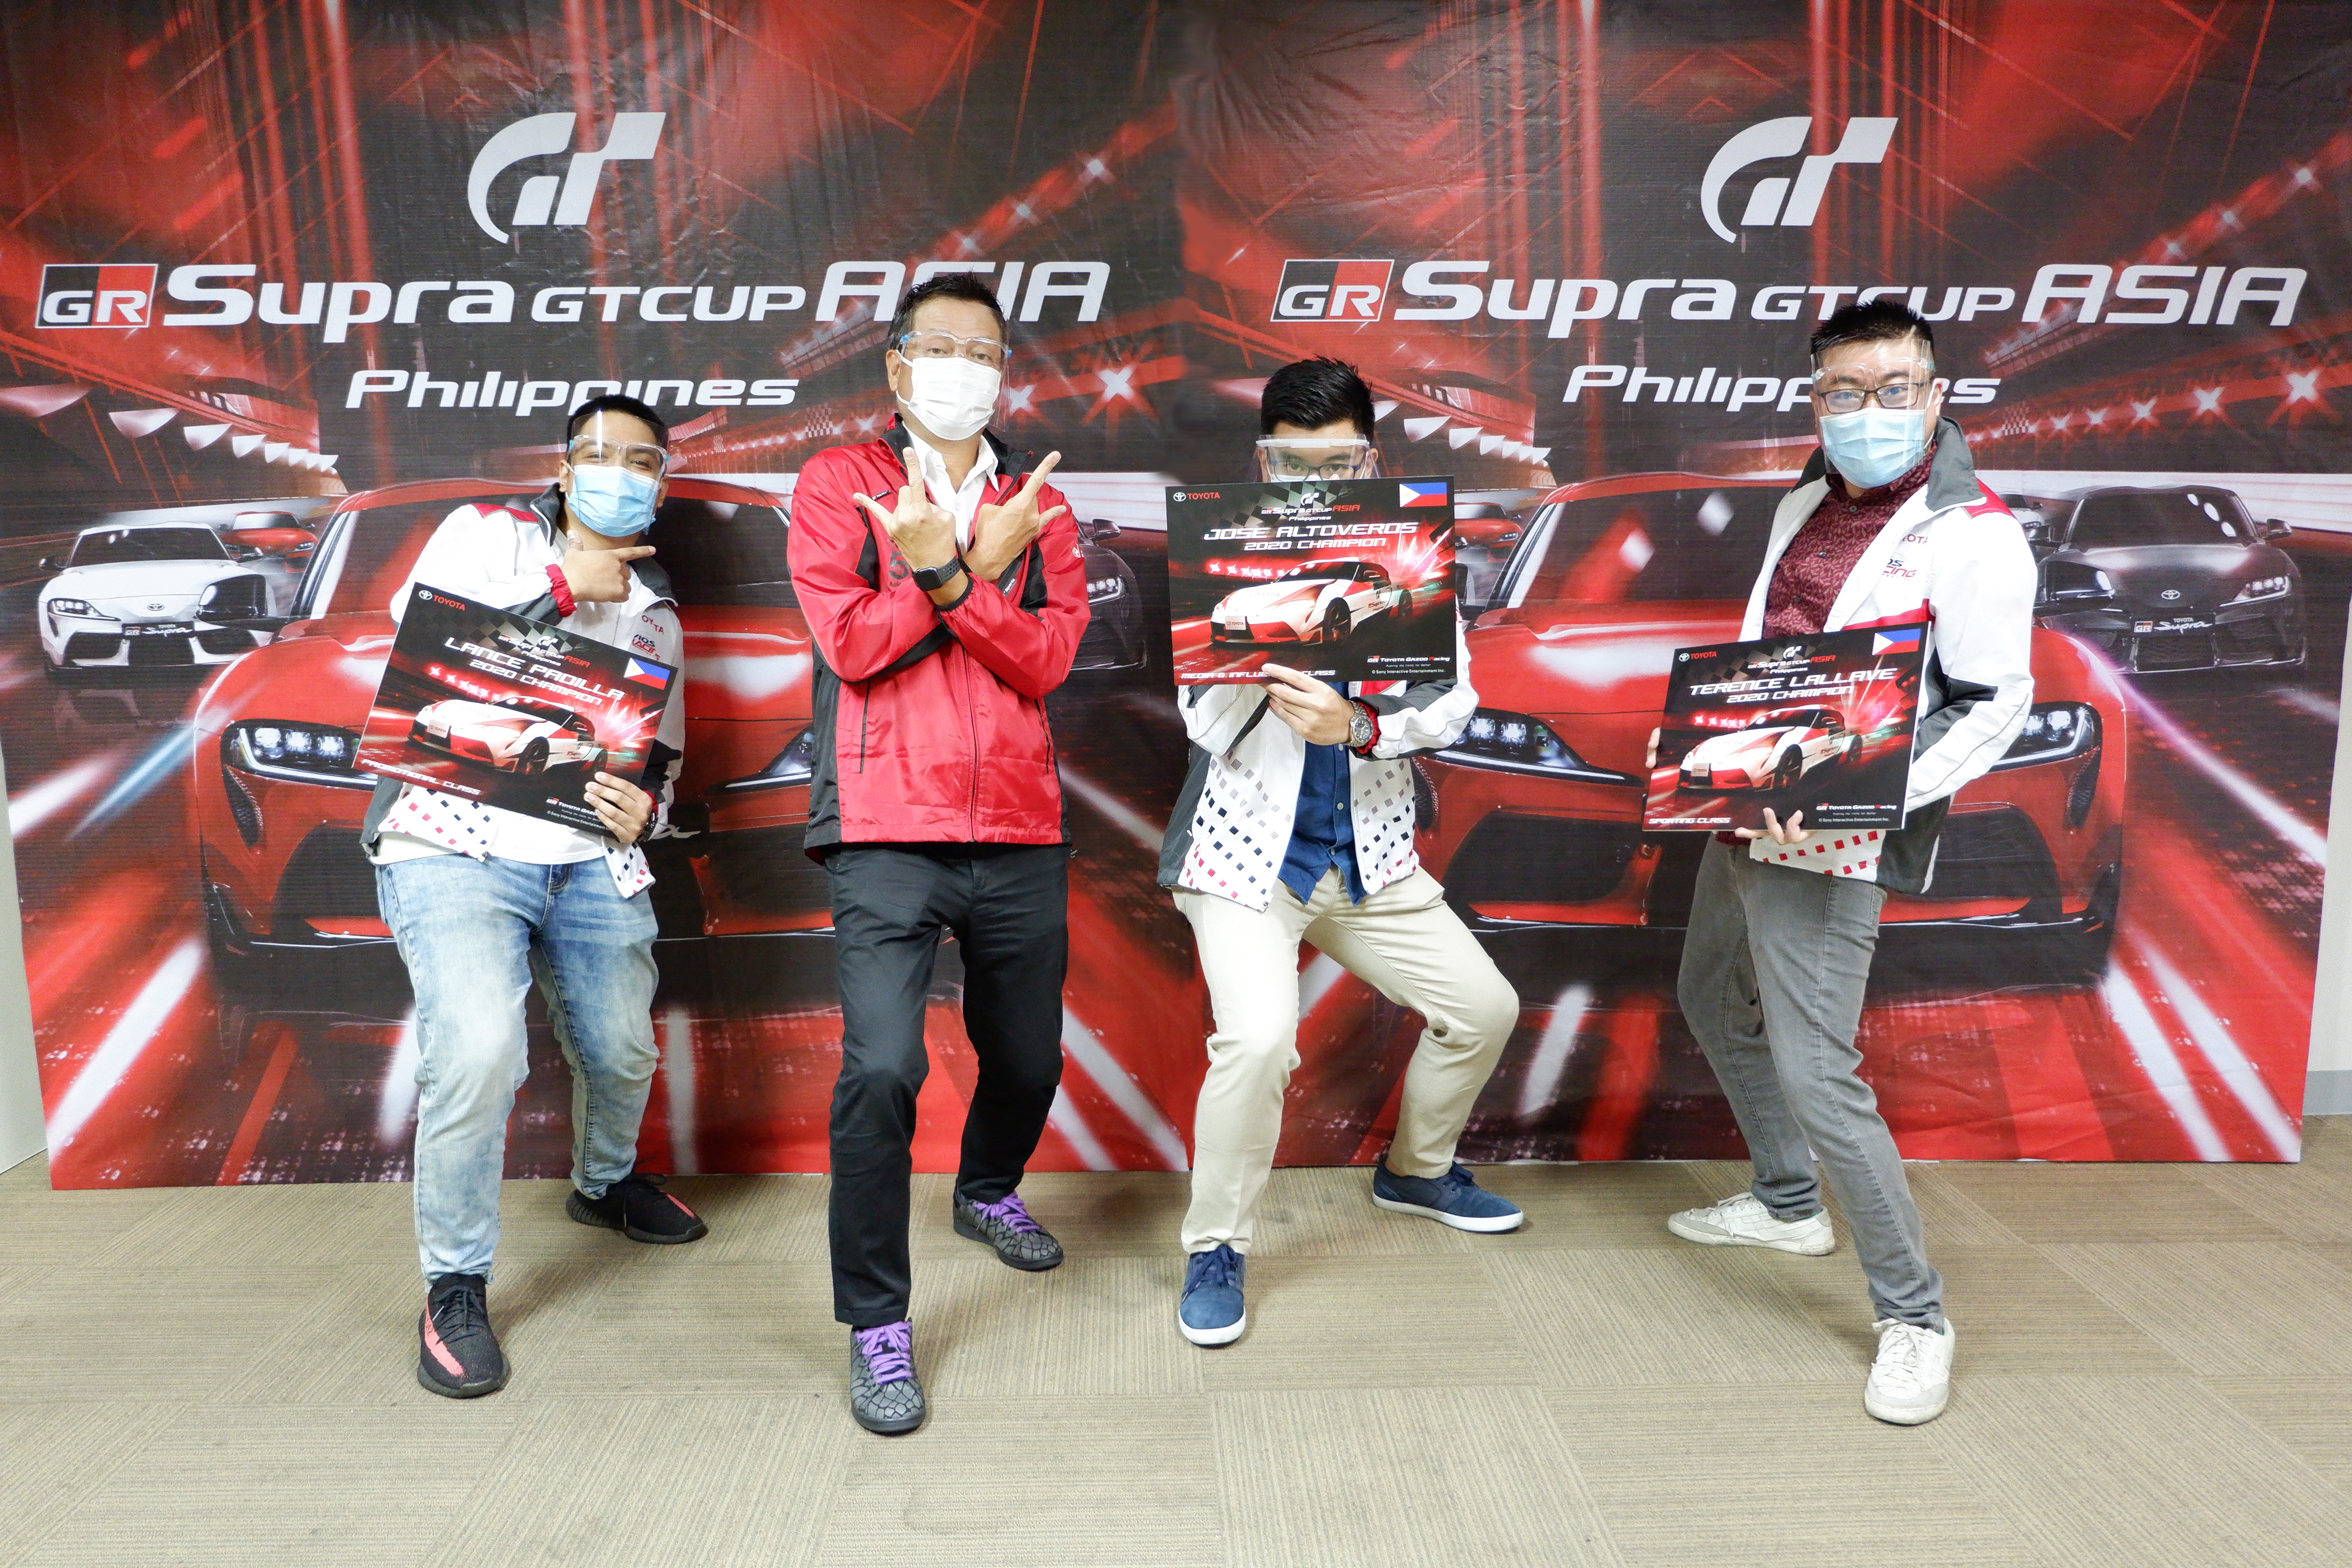 Toyota Motor Philippines crowns GR Supra GT Cup Asia Philippines champions